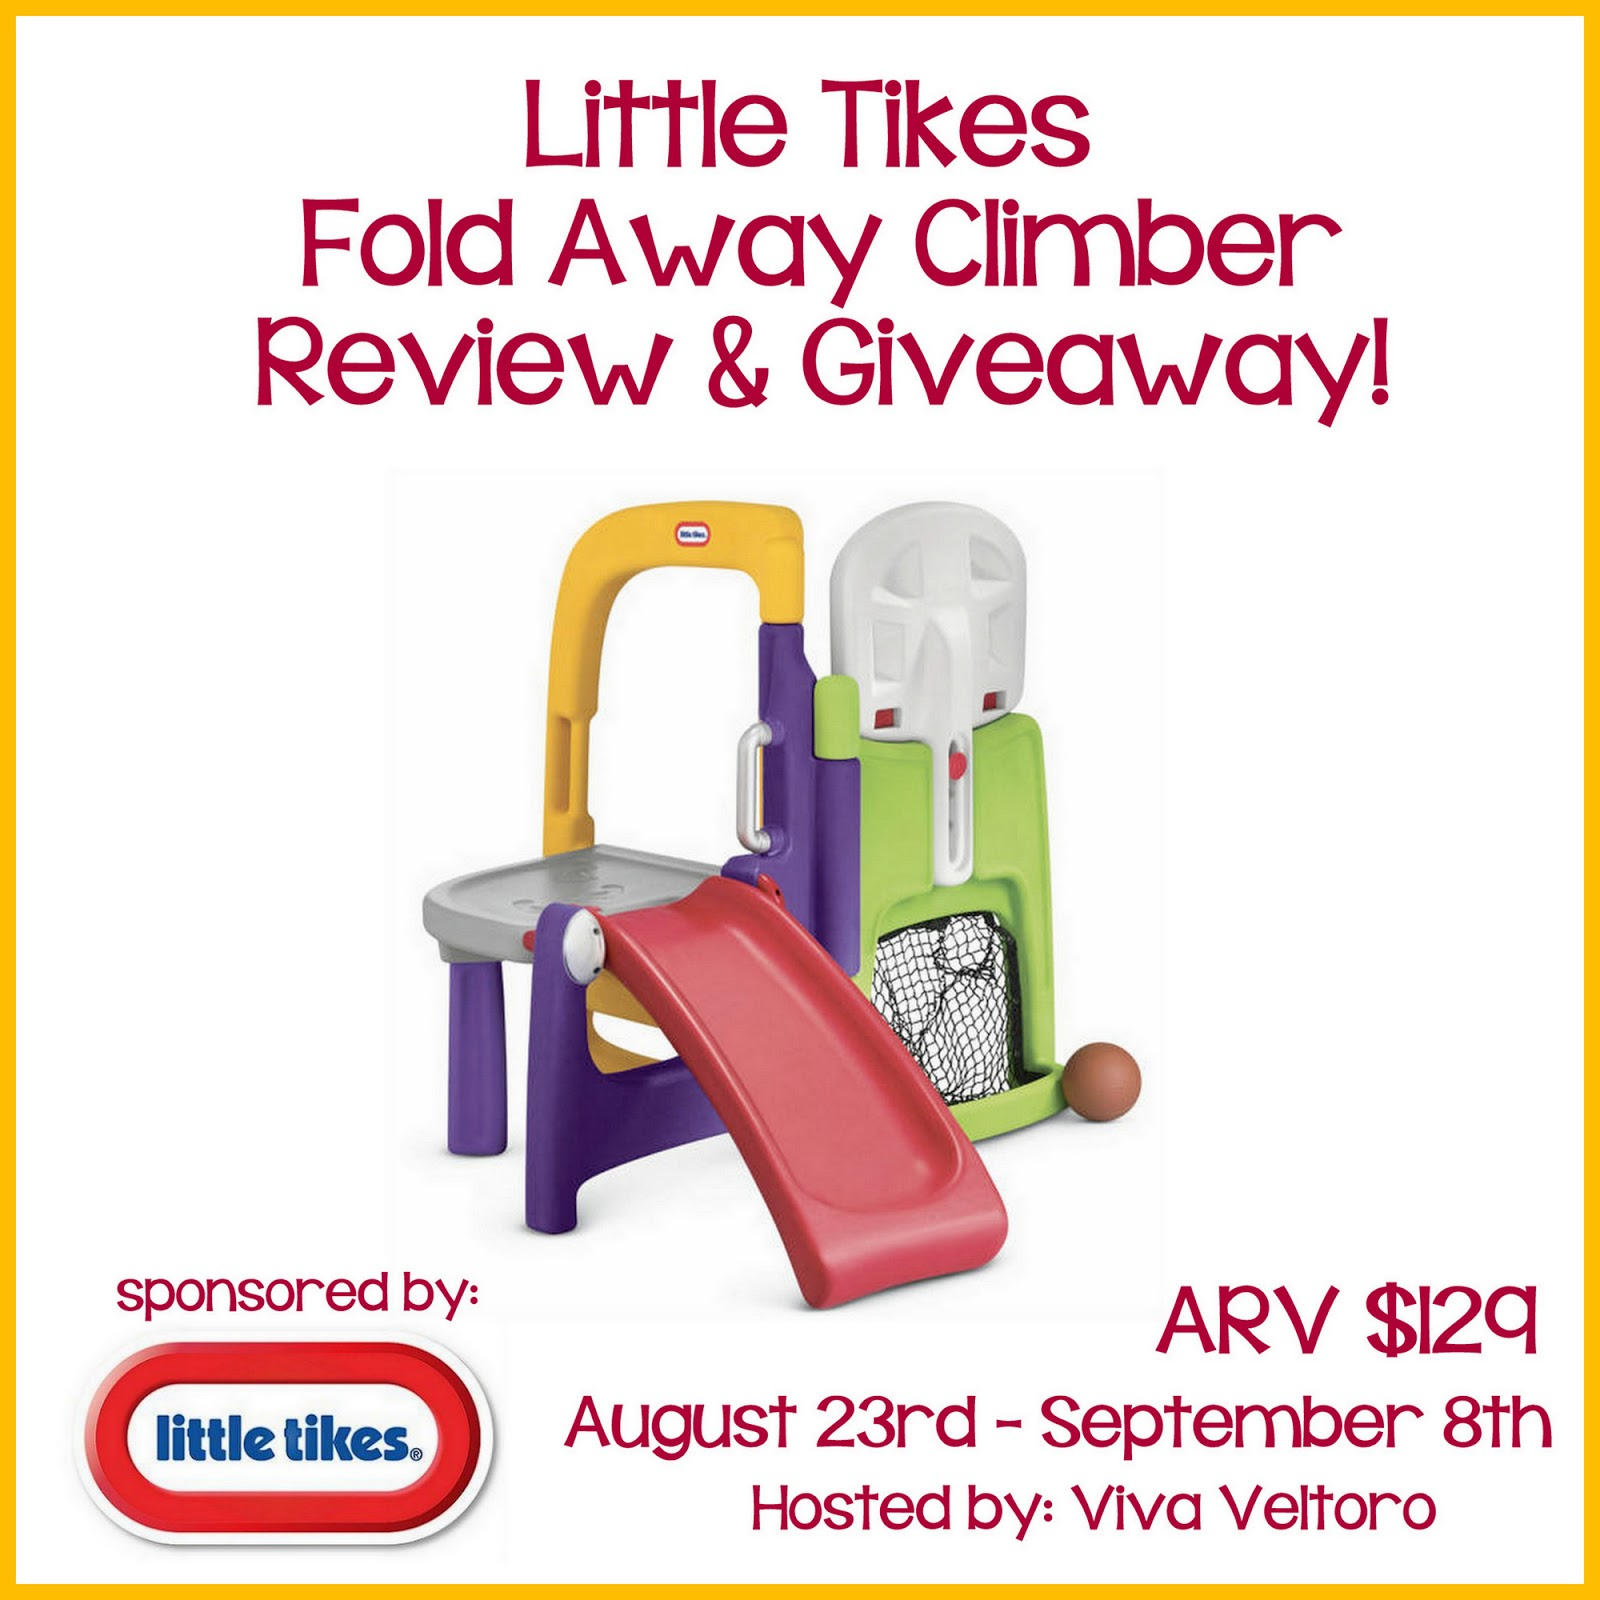 Design Your Own Swag Contest Ends Today: Little Tikes Fold Away Climber Giveaway